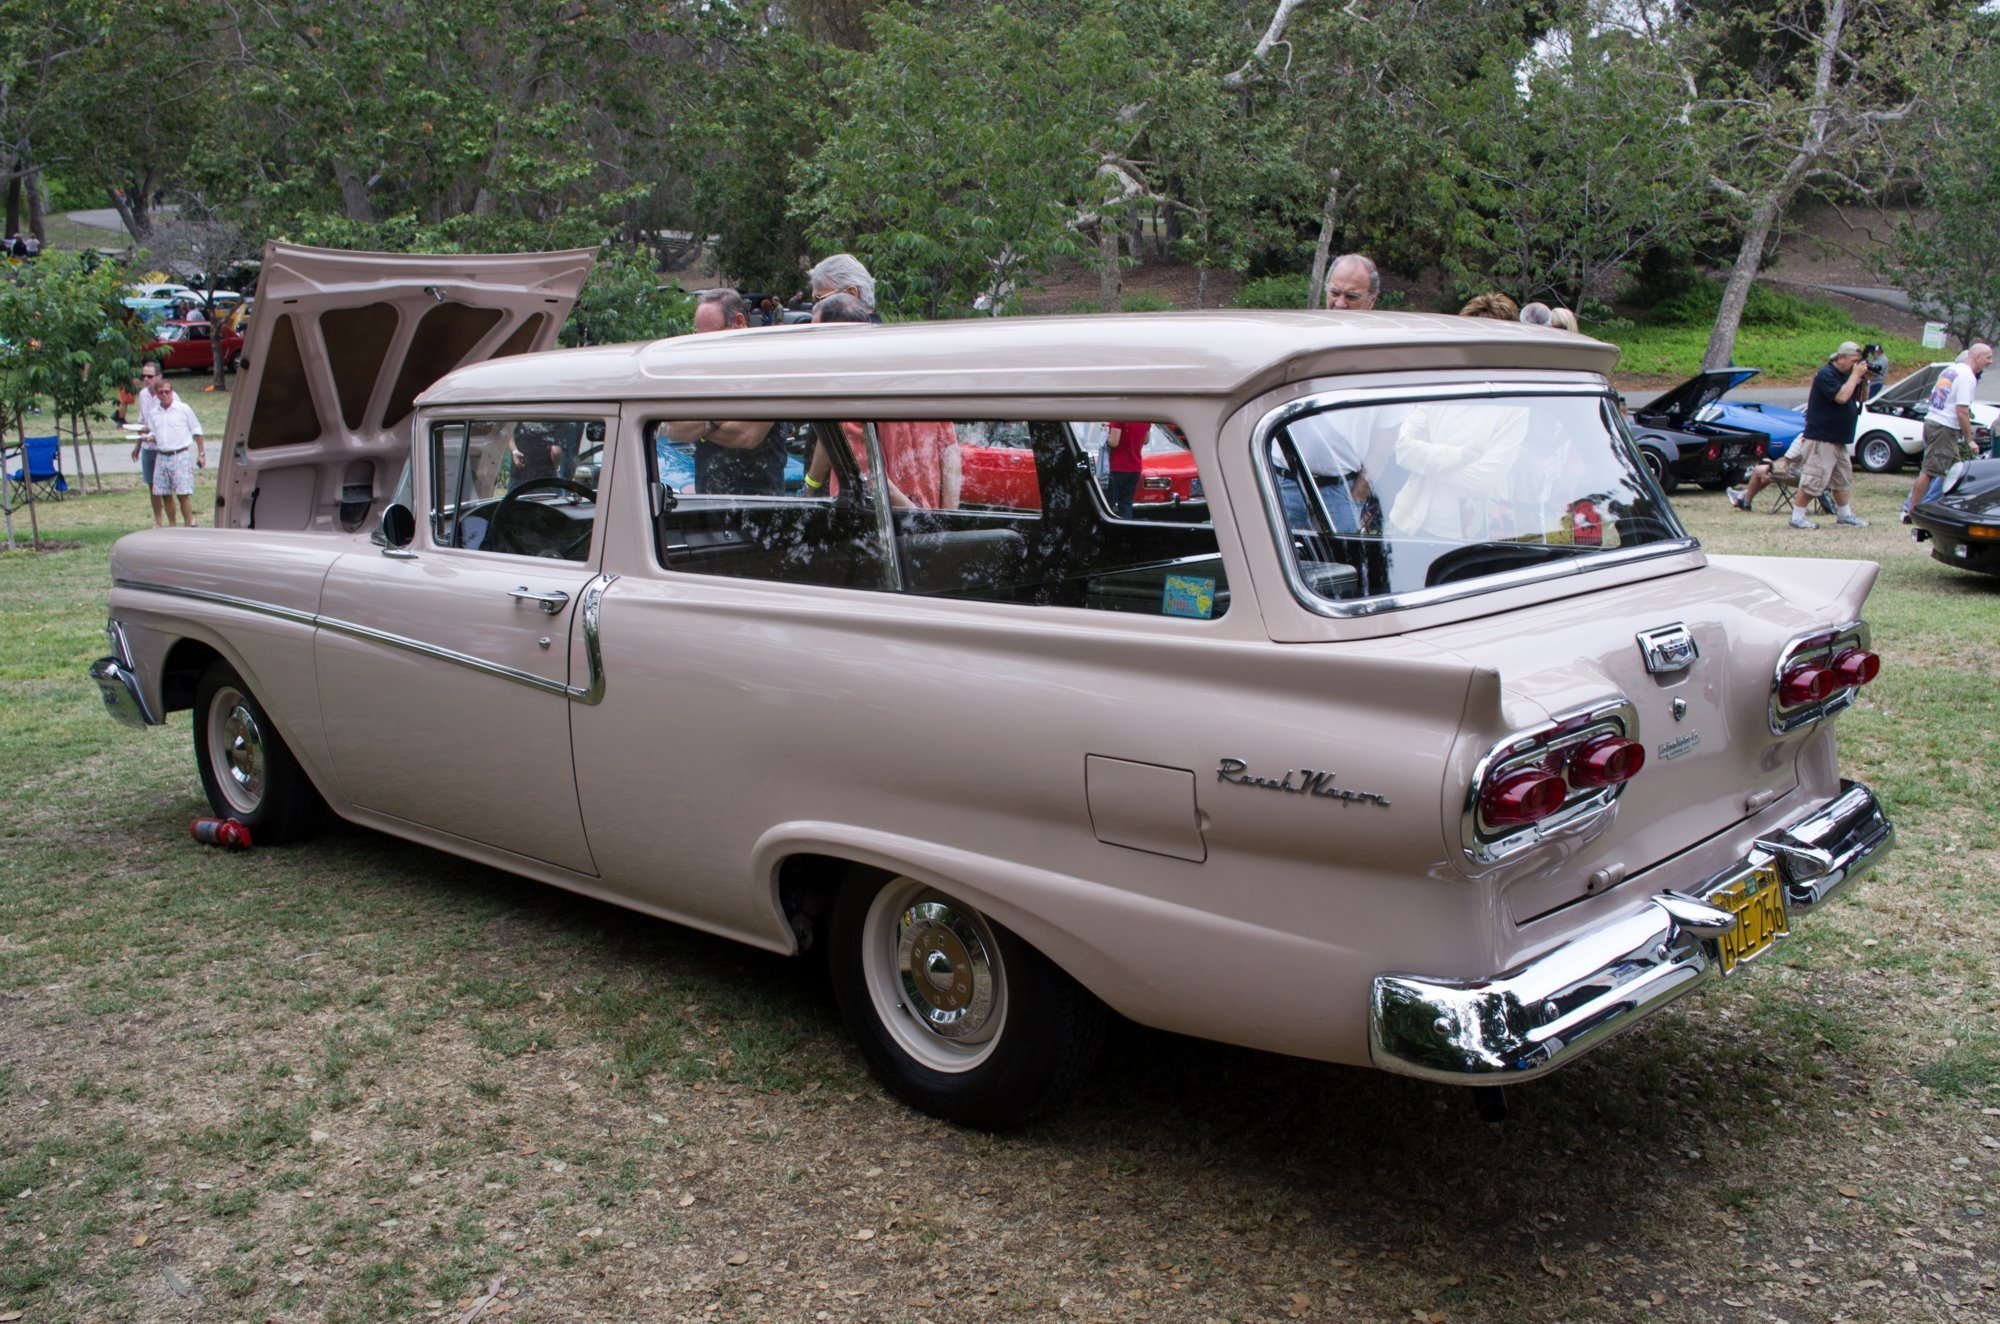 56 Ford Ranch Wagon For Sale Autos Post